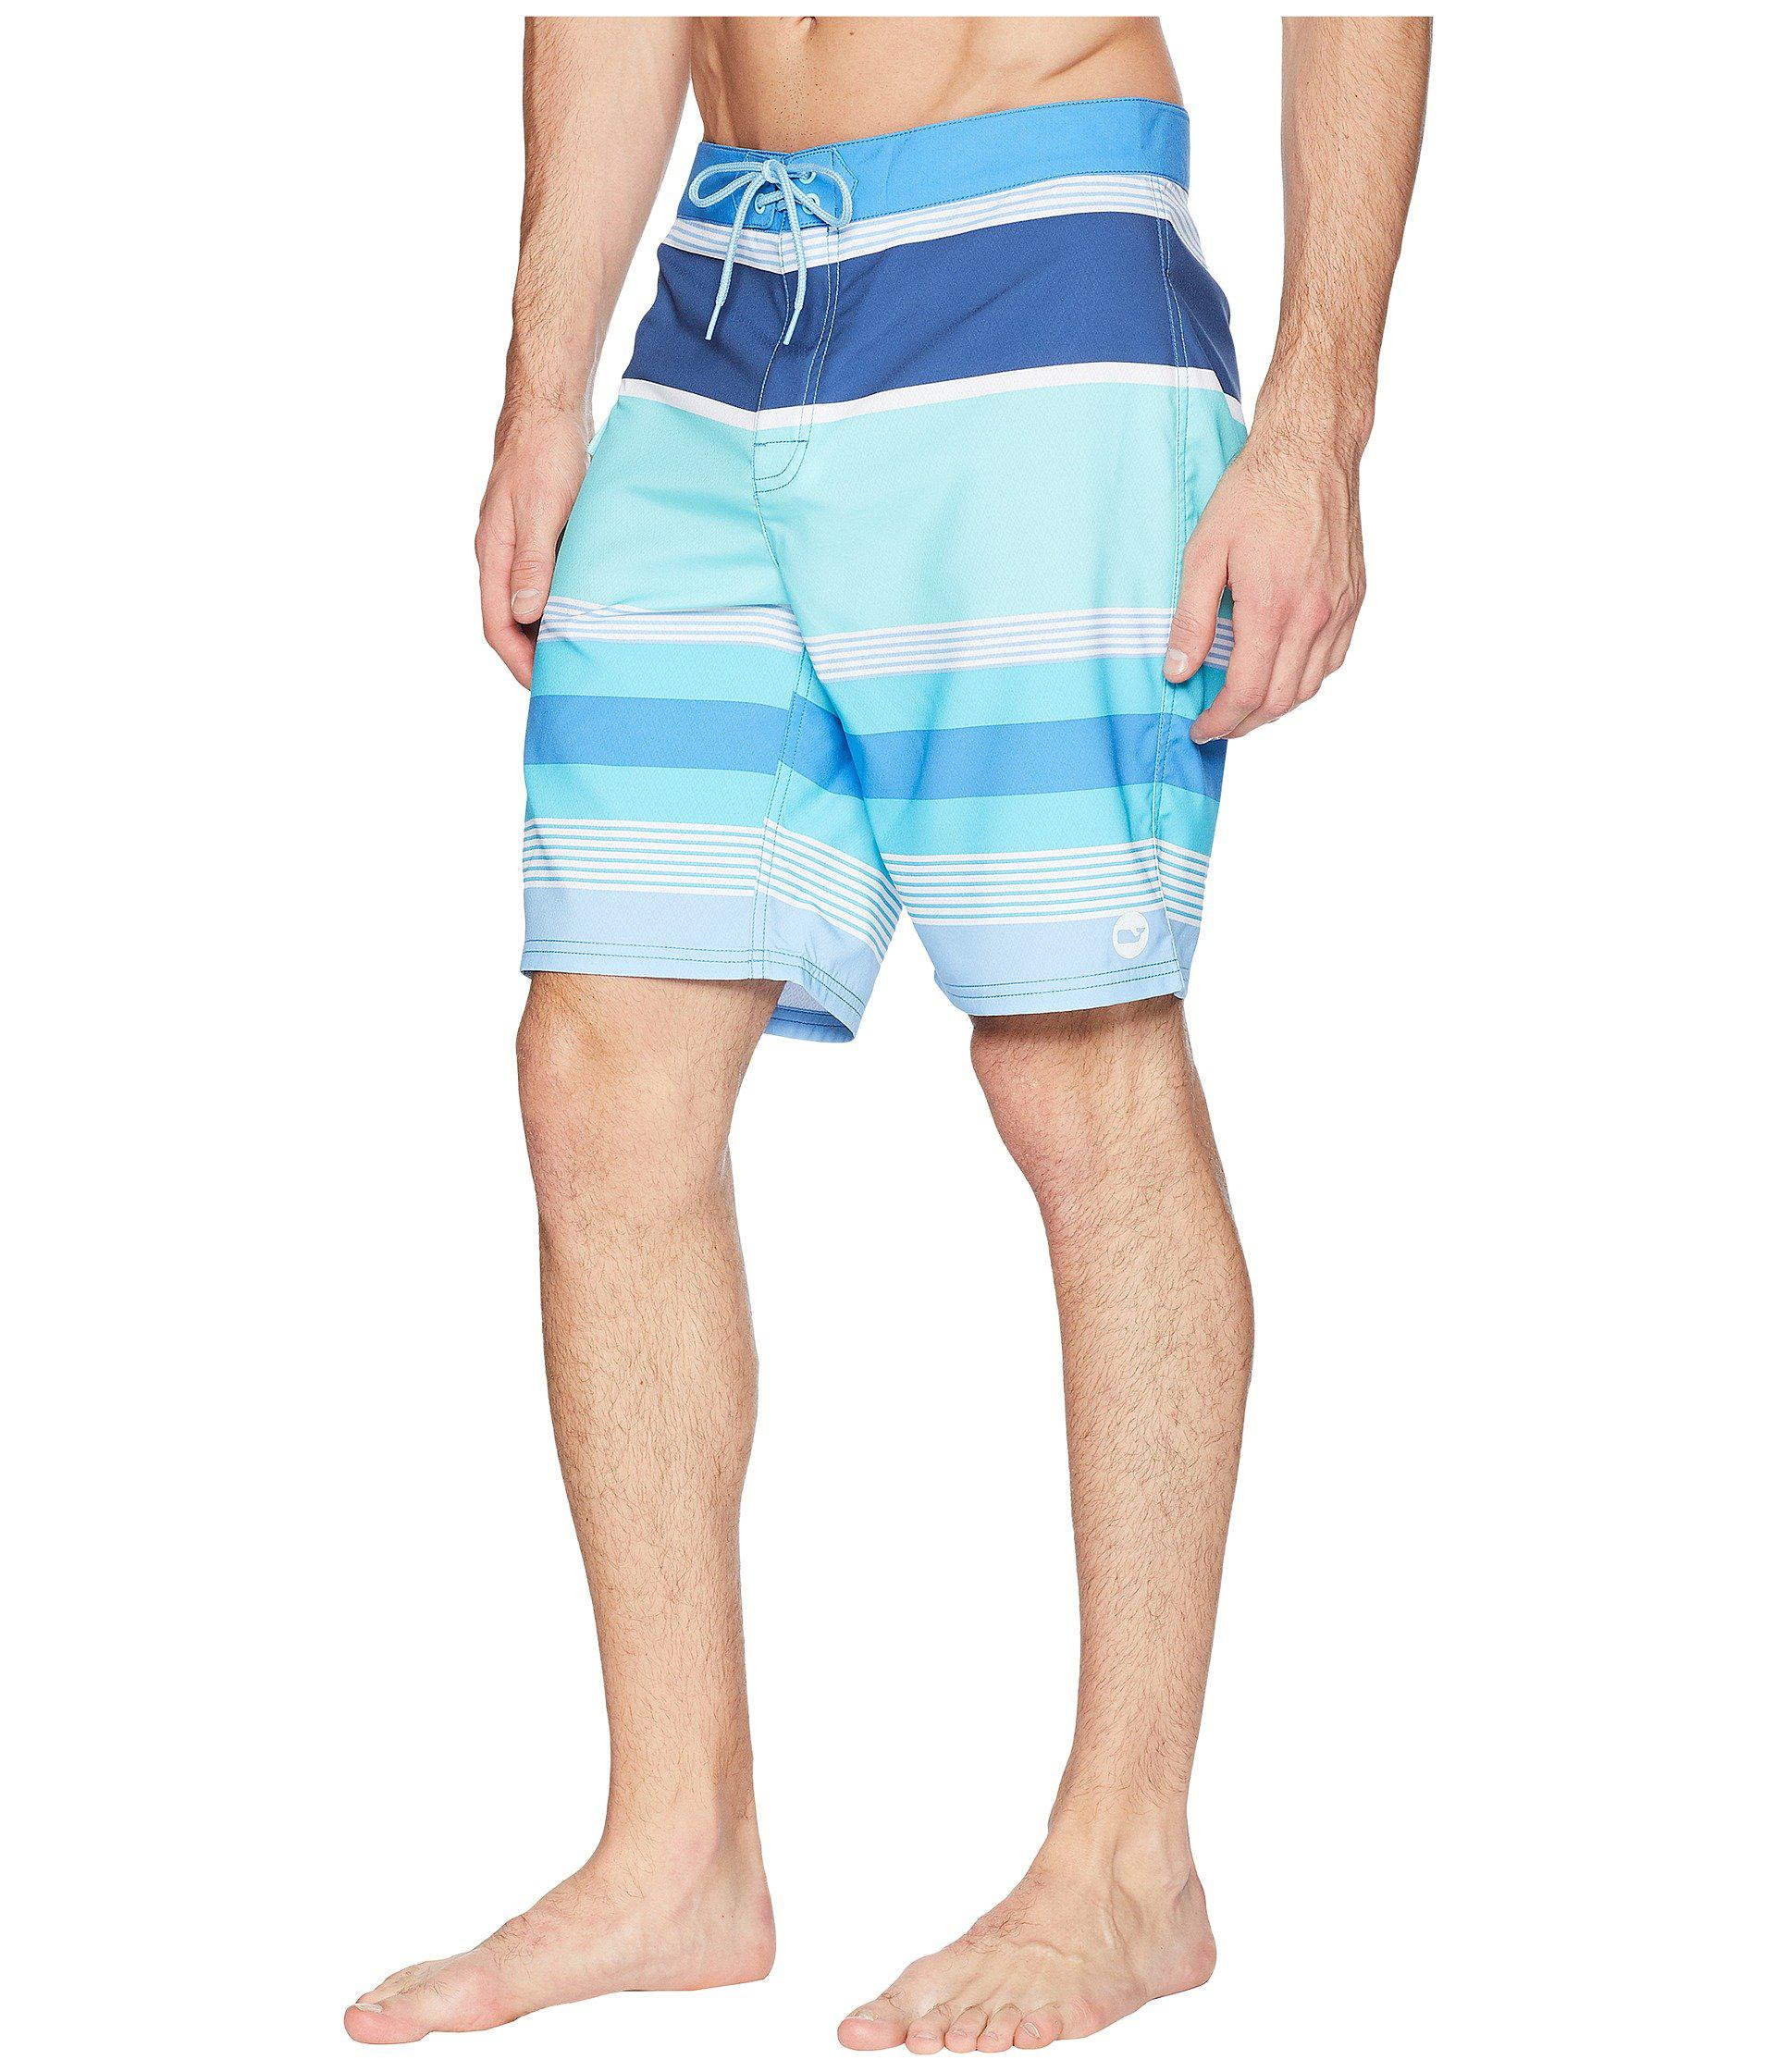 5428ea30515b8 Lyst - Vineyard Vines Peaks Island Stripe Boardshorts in Blue for Men -  Save 35%